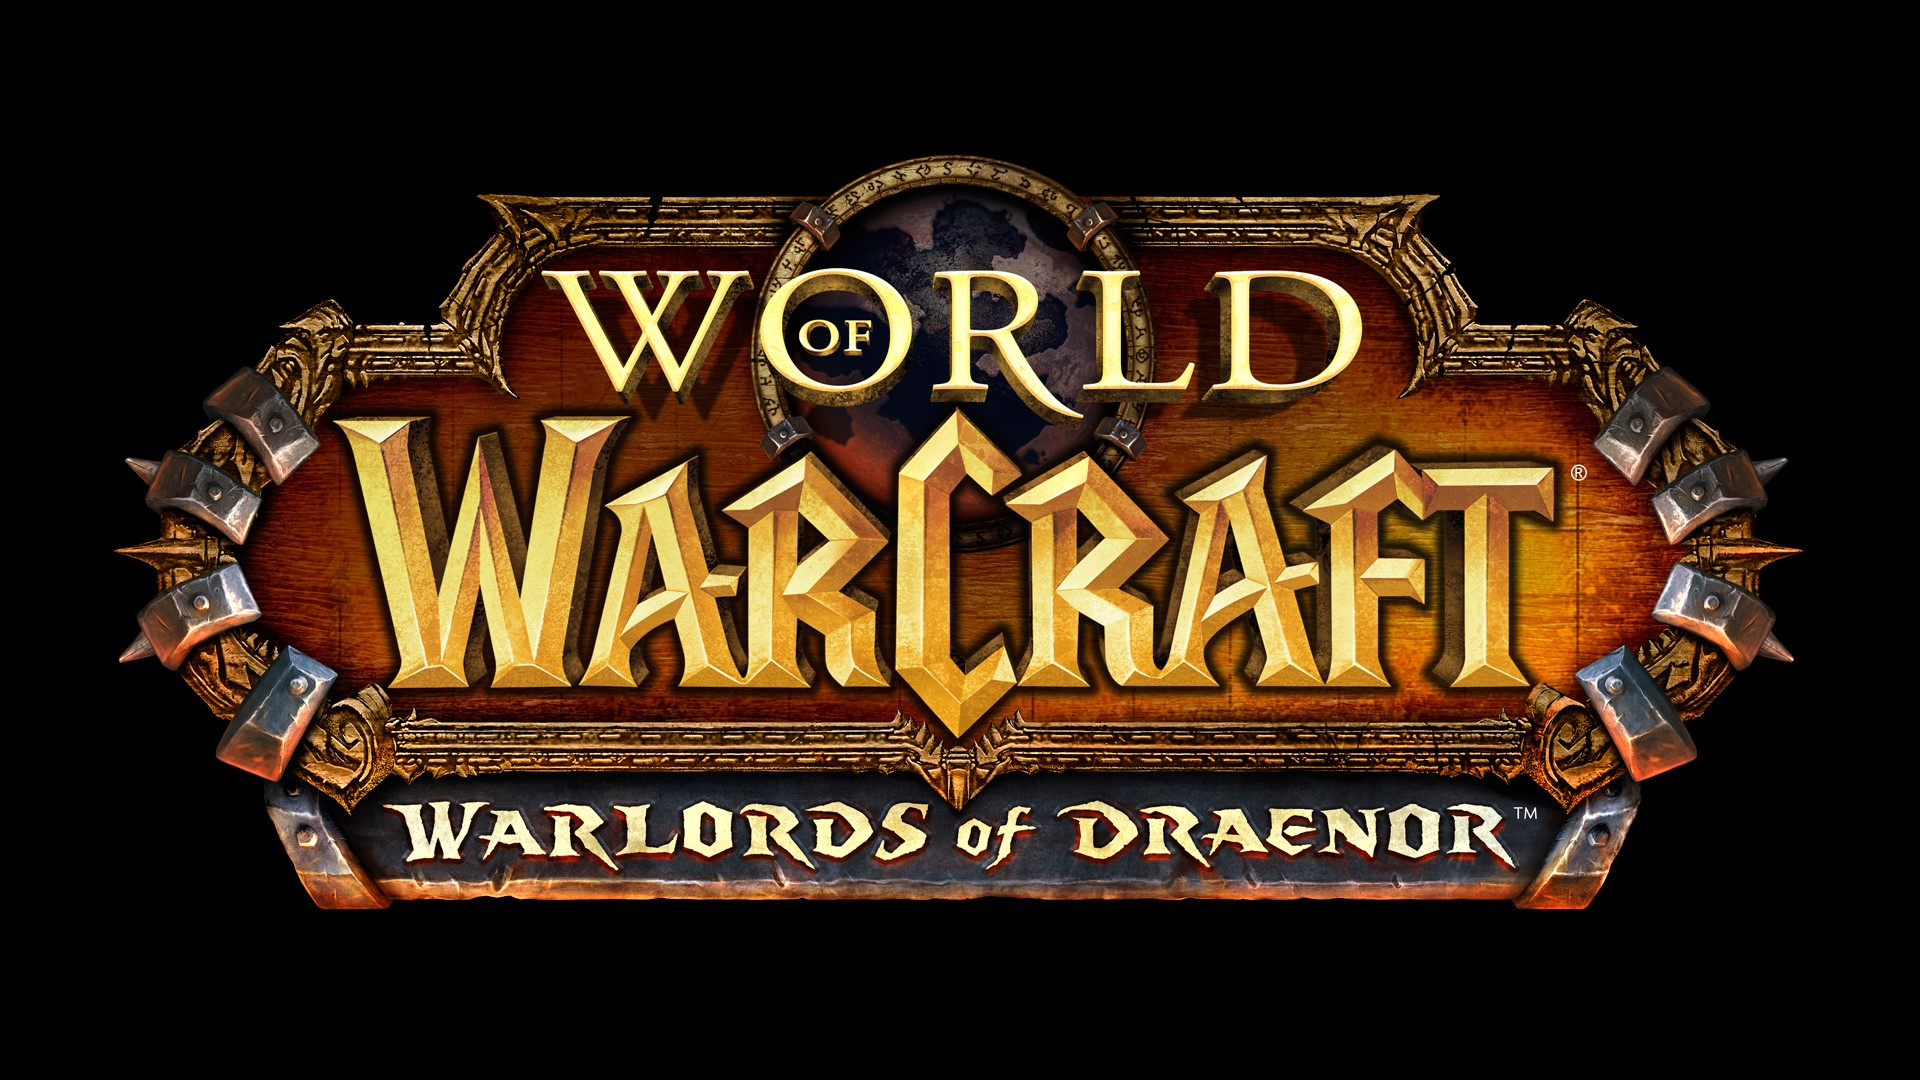 World Of Warcraft Warlords Of Draenor RUS +90 LVL BOOST